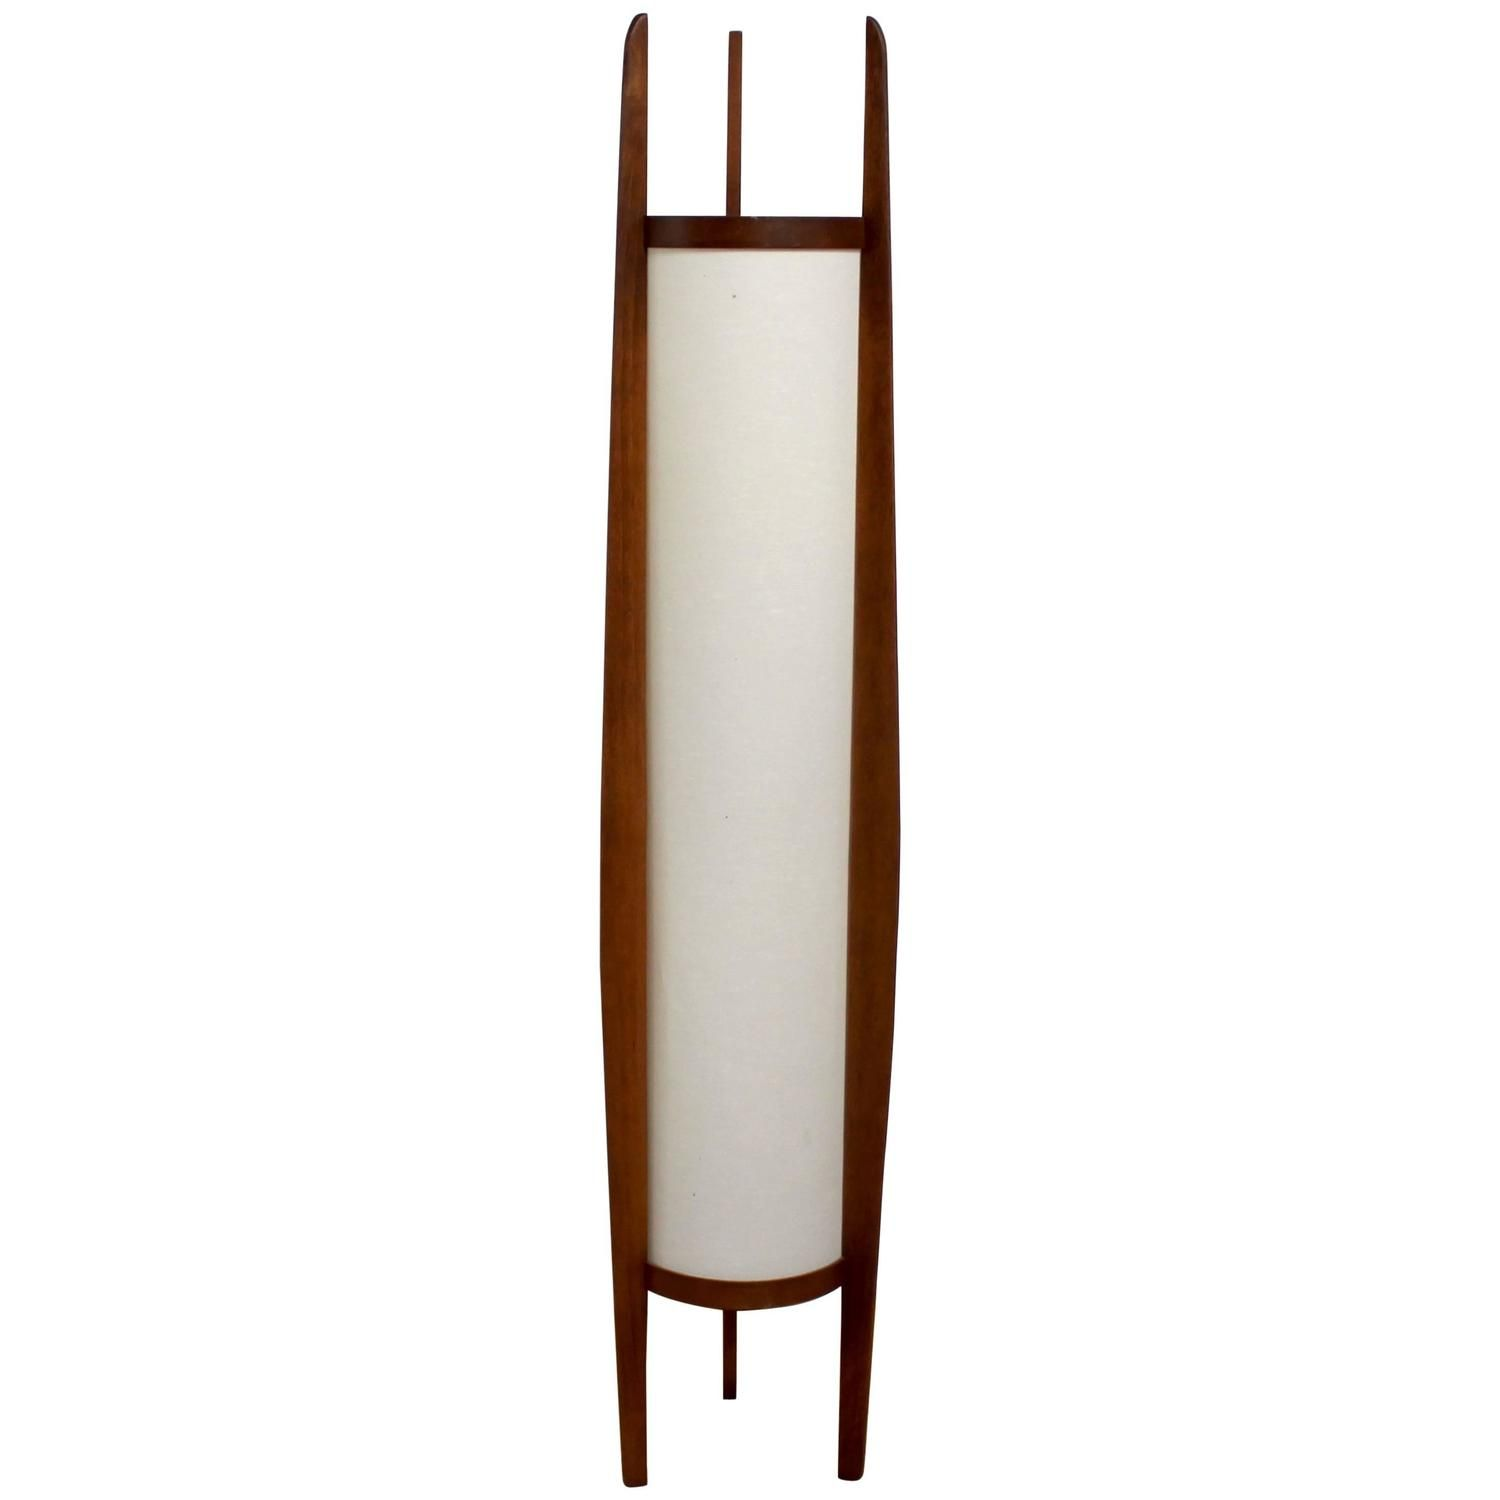 1960s Danish Modern Sculptural Teak Modeline Floor Lamp